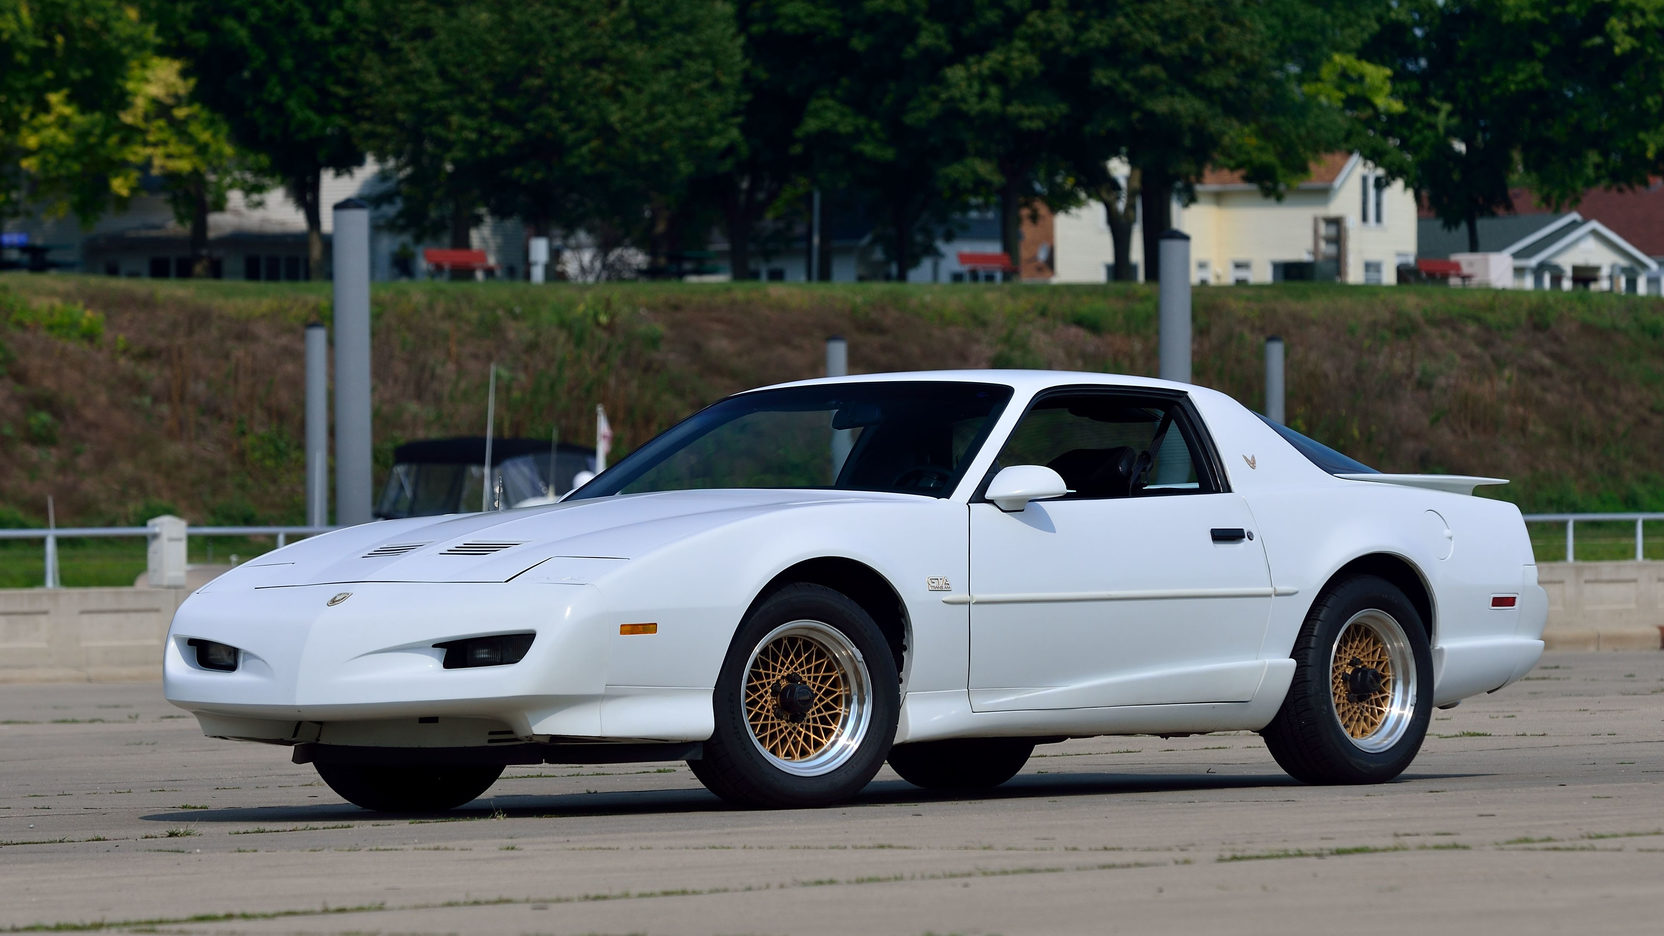 Gold And Teal Wallpaper Quote 1991 Pontiac Trans Am Gta F128 Chicago 2015